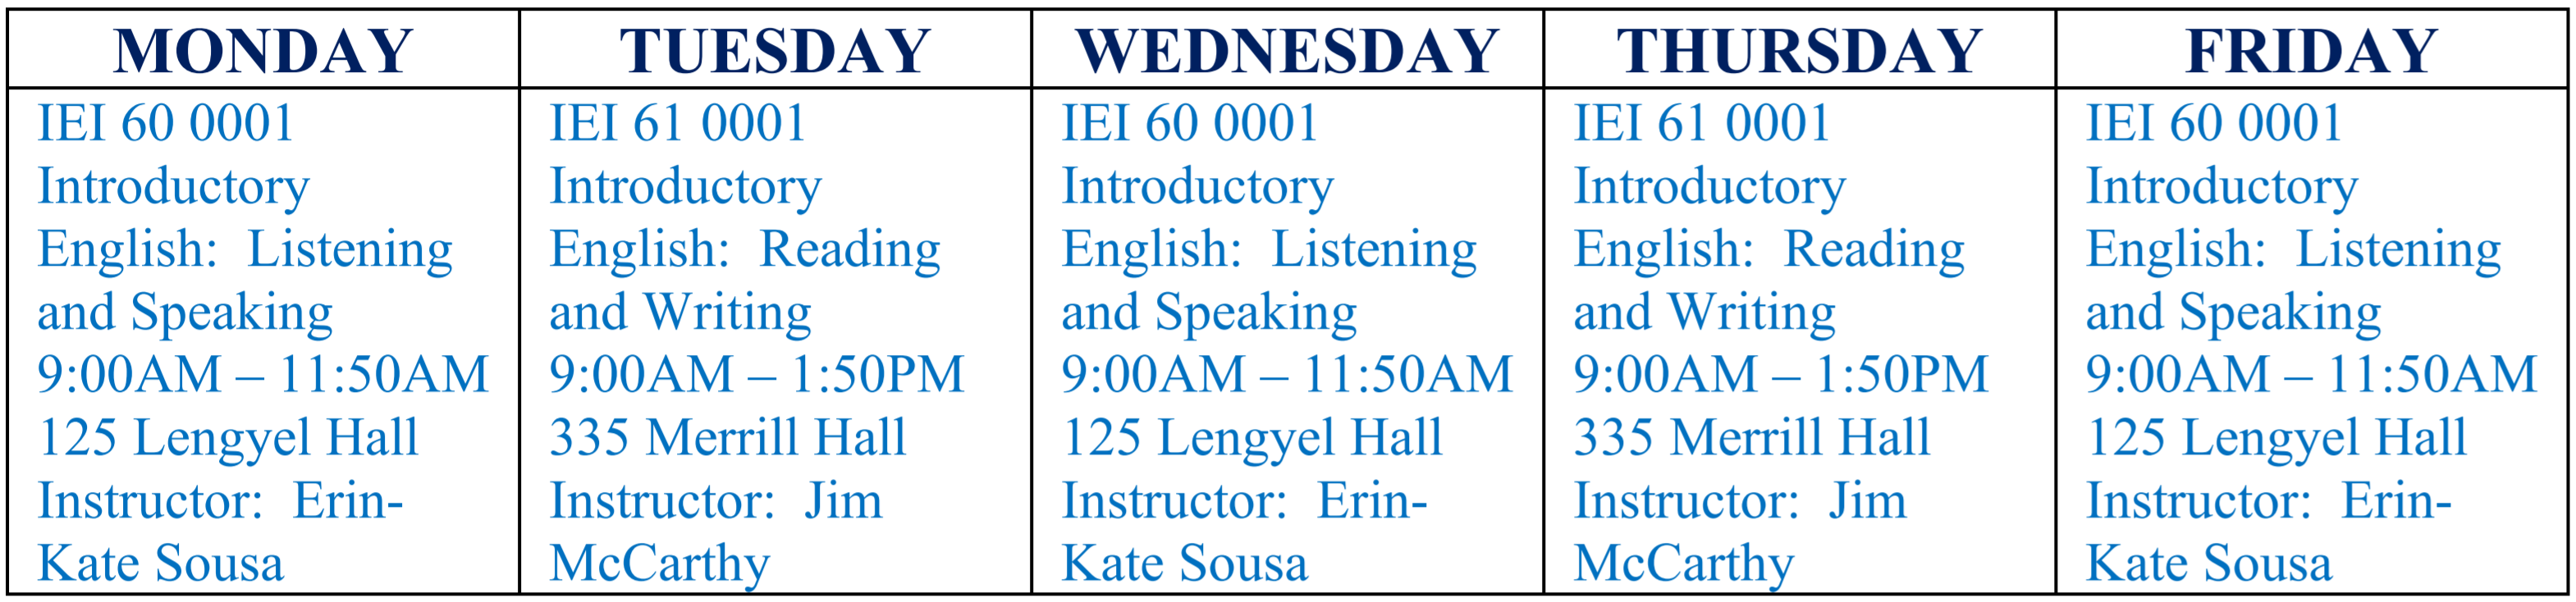 Sample Course Schedule for the IEI Core Intensive English Program